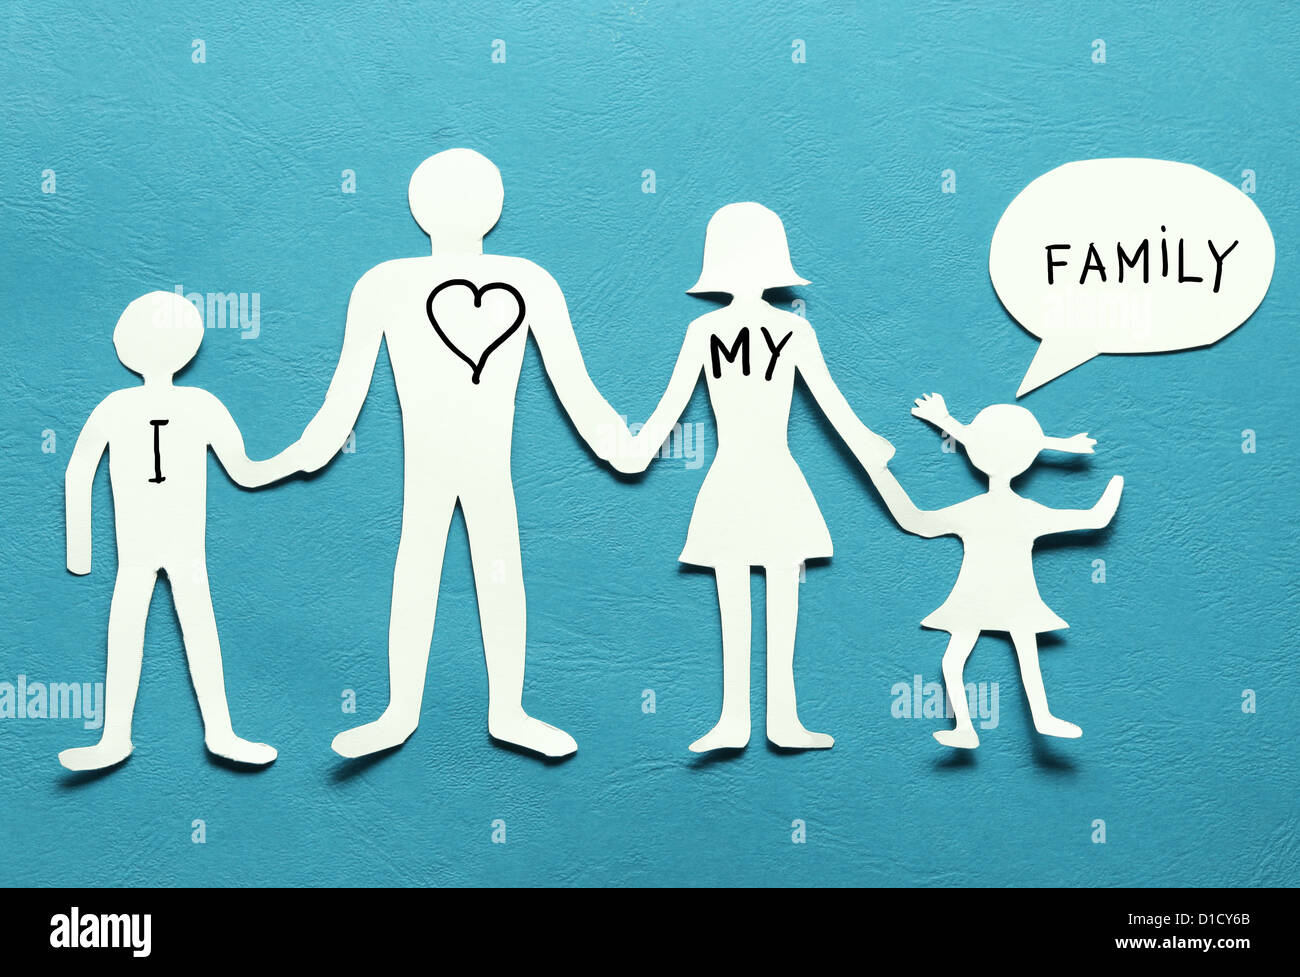 Cardboard figures of the family on a blue background. The symbol of unity and happiness. Stock Photo